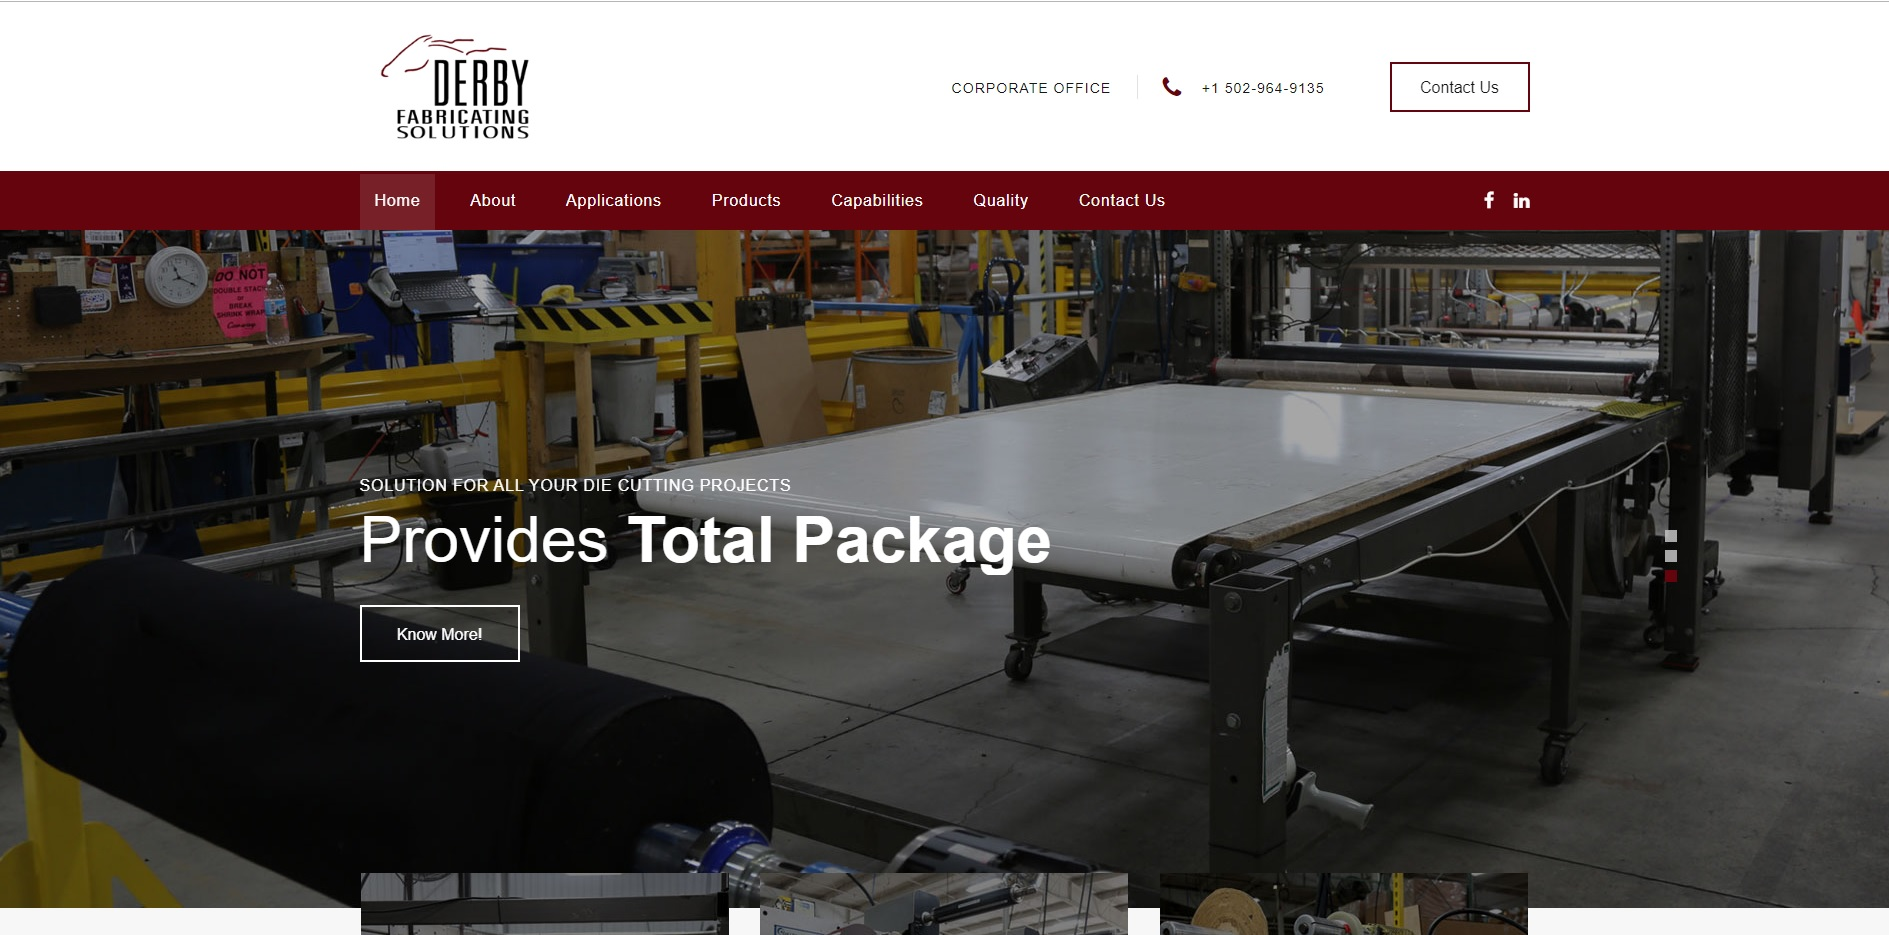 Advanced Fabricating tech./Derby Fabricating Solutions, Inc.